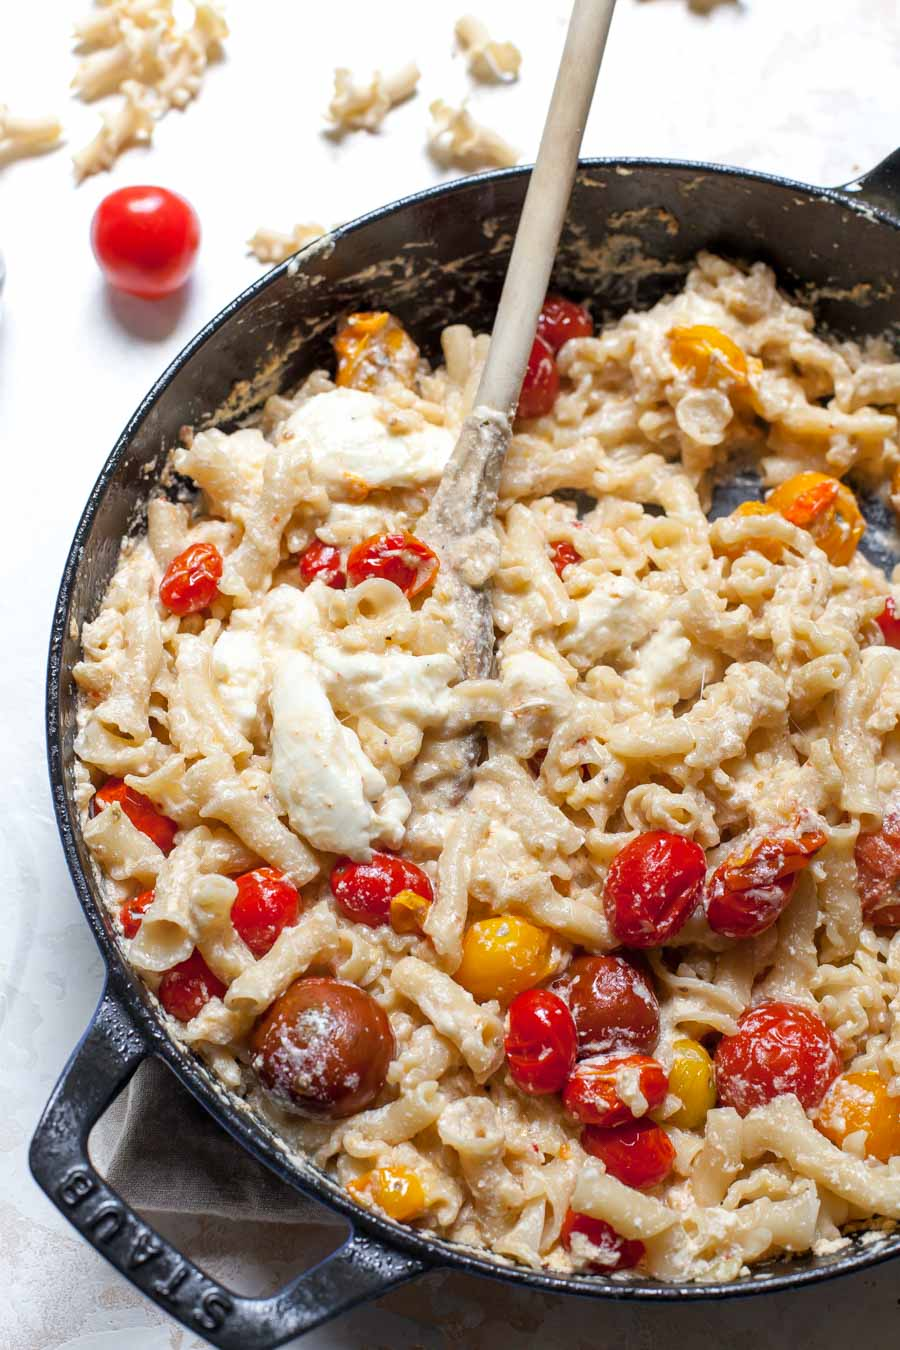 Mozzarella and Ricotta Mac and Cheese with Burst Cherry Tomatoes